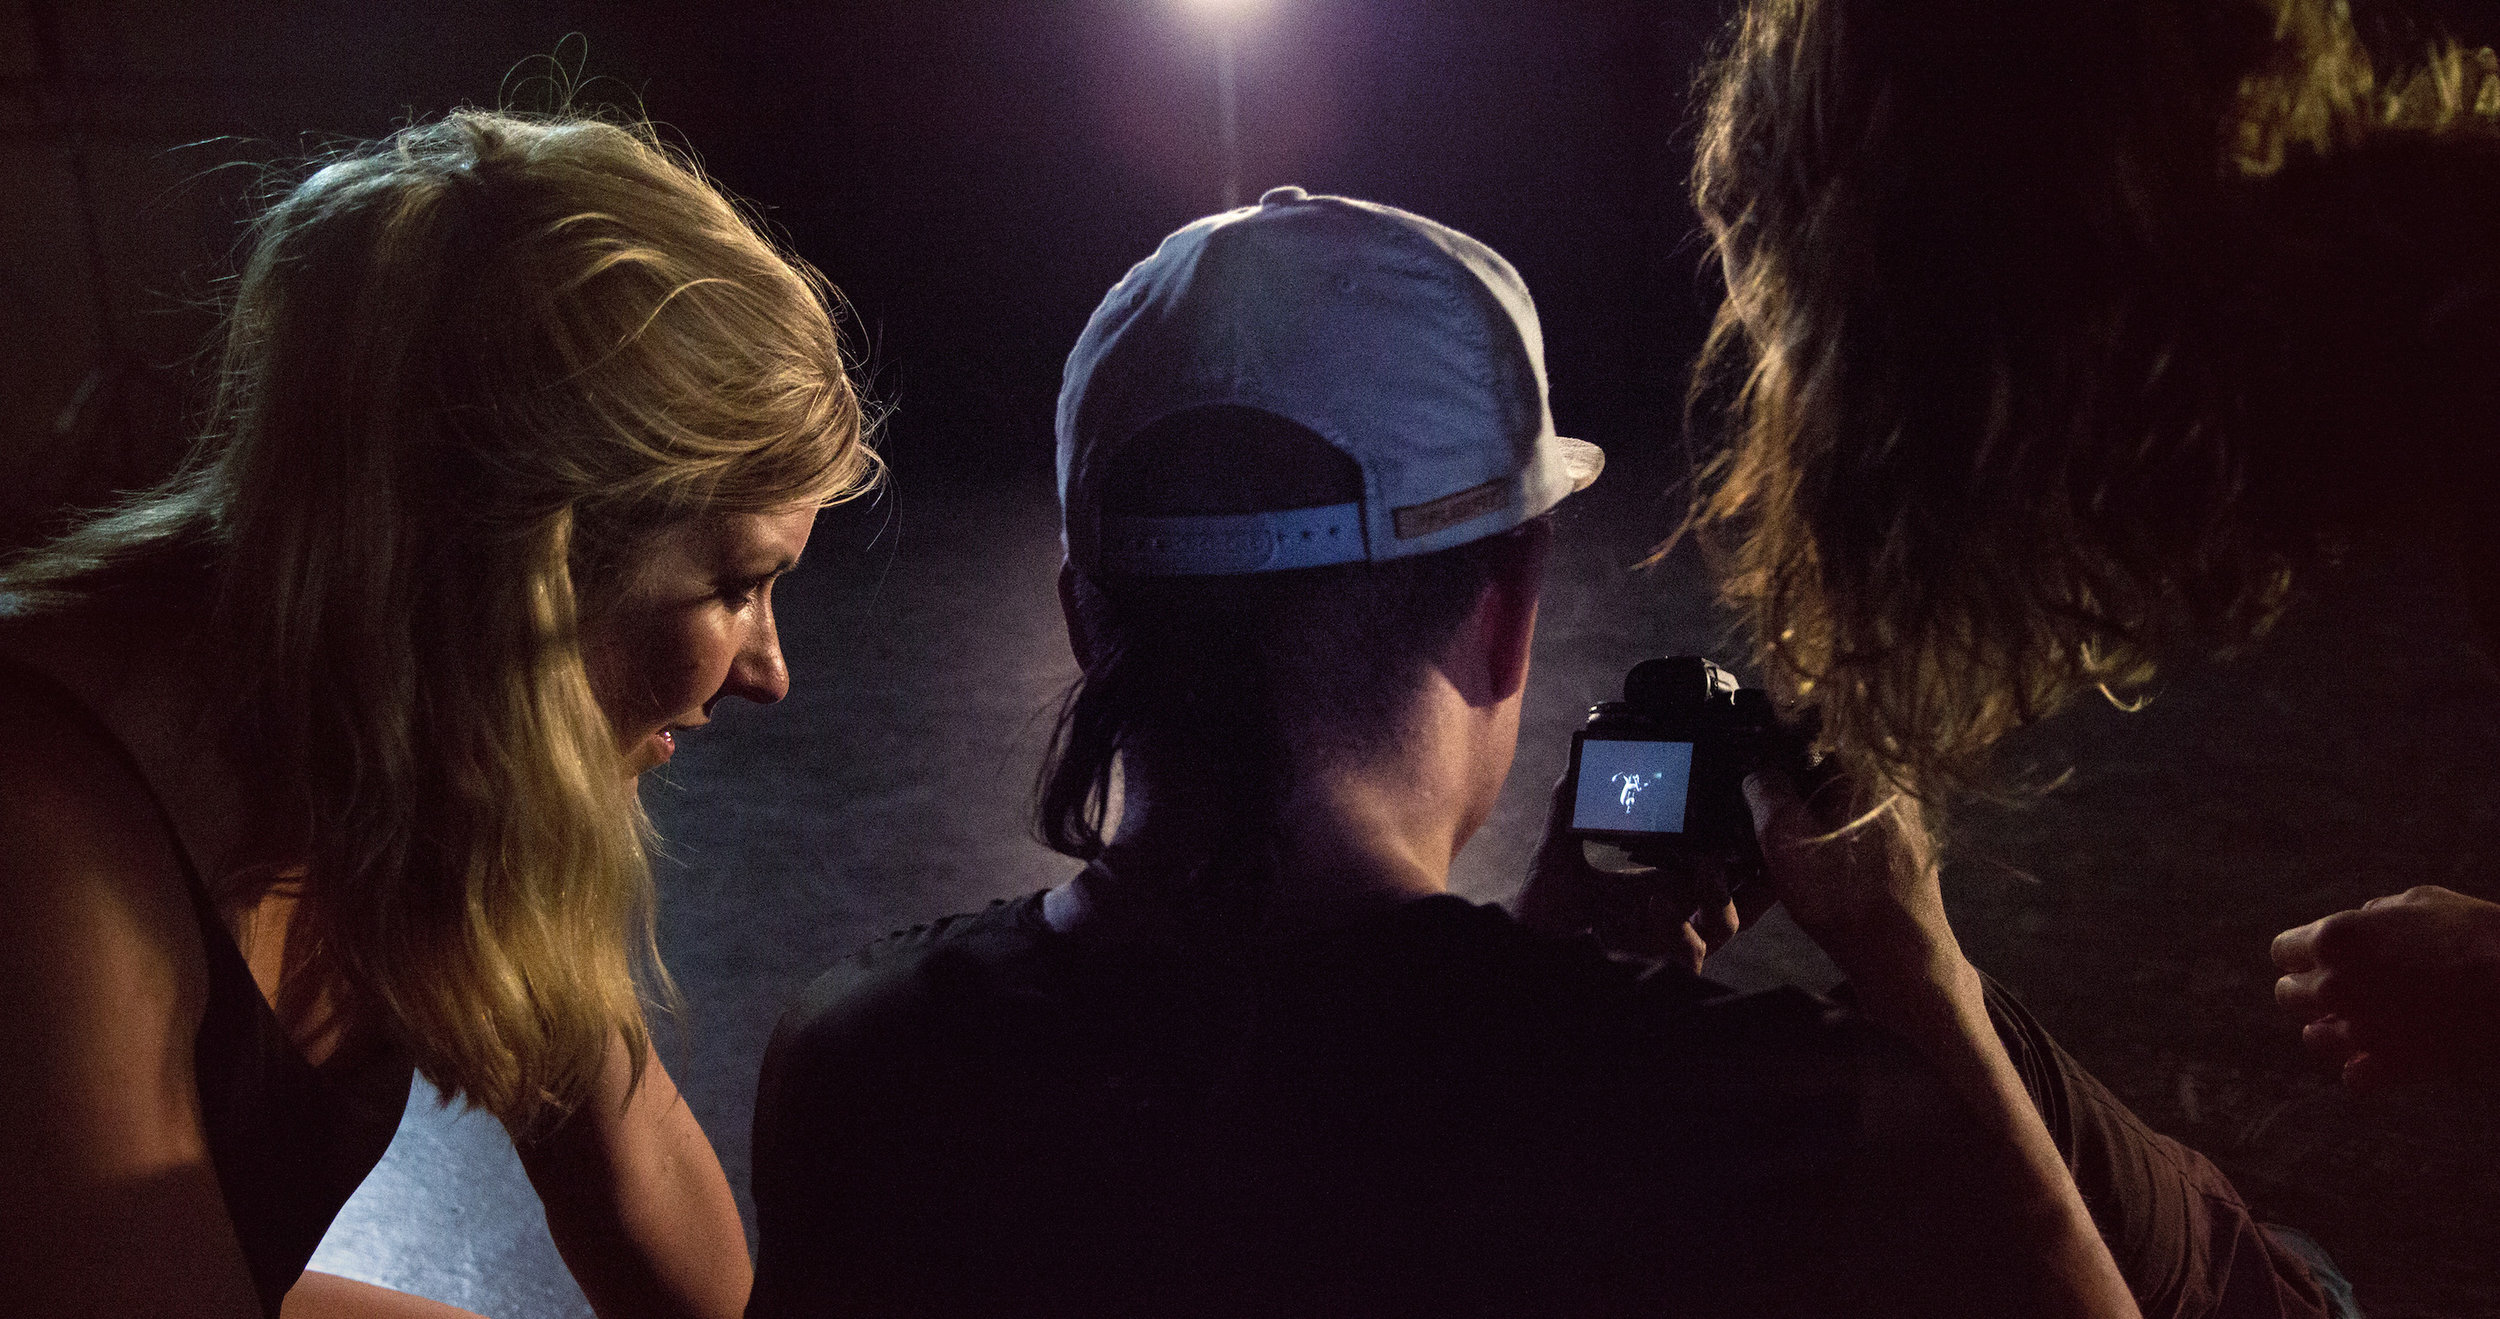 Sarah (left) with videographer Frace Luke Mercado and Dream Dance Company member watches back footage during filming for Enter the Vortex's promotional release.